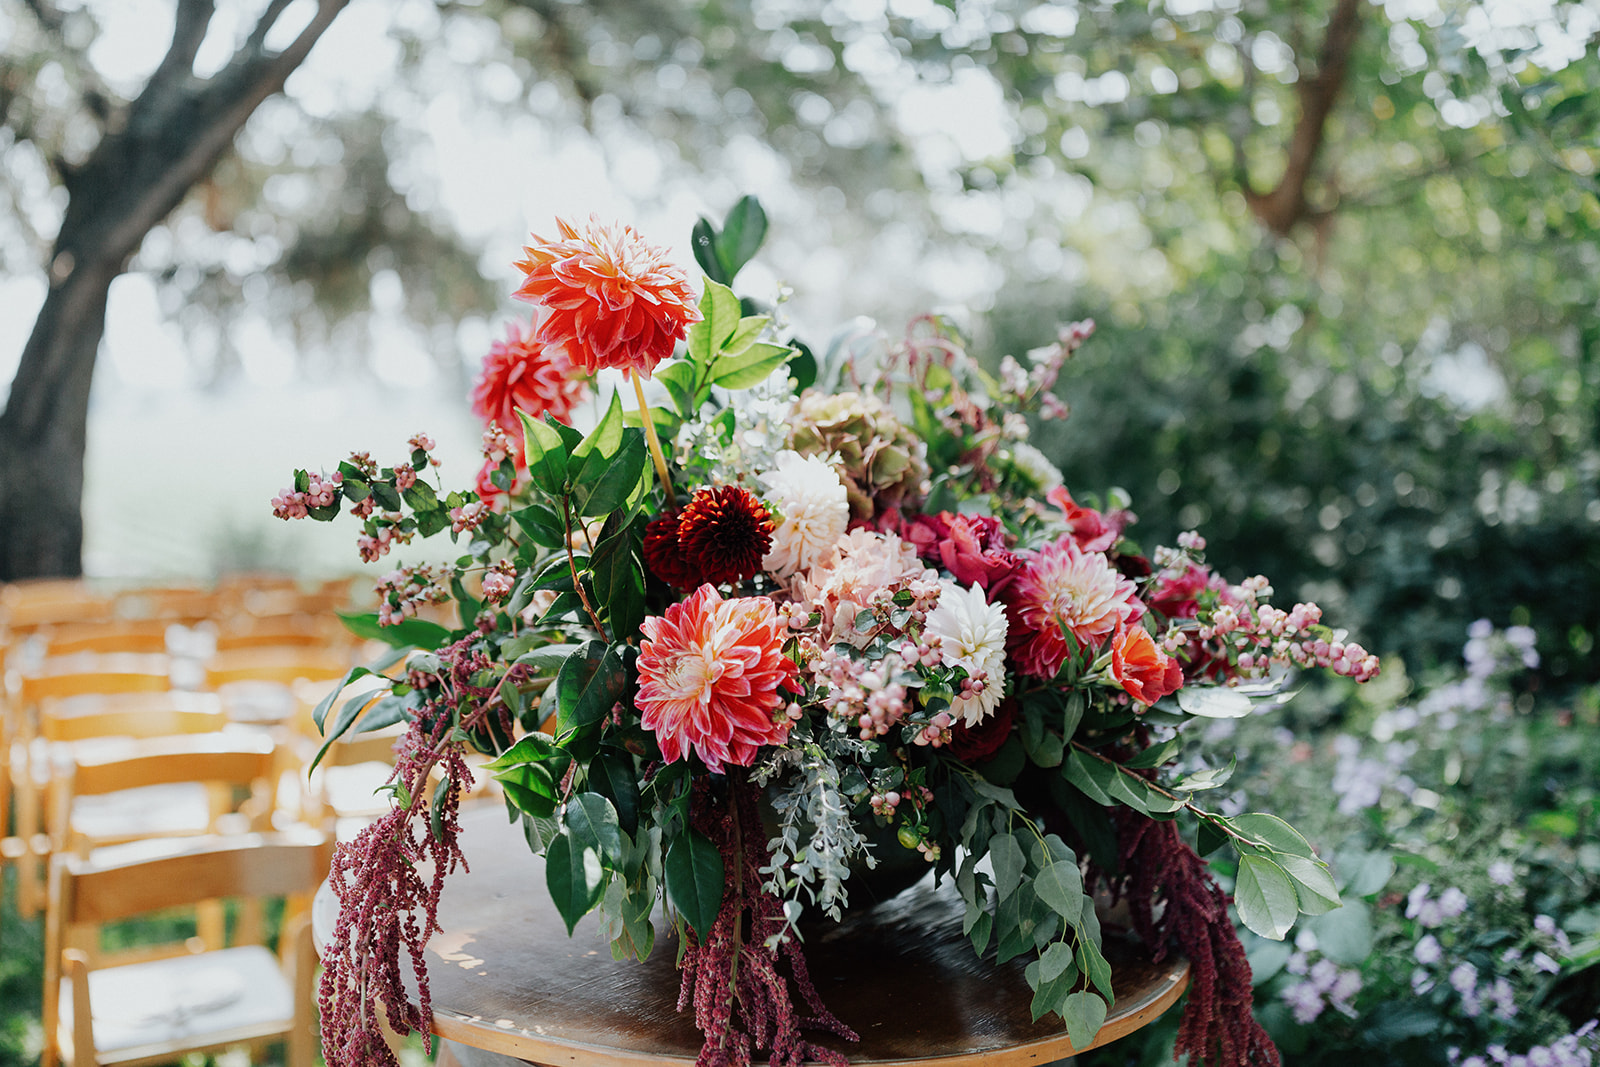 Lush and vibrant ceremony flowers with Amaranth, Dahlias, Snowberry, and antique Hydrangea by Venn Floral in Healdsburg at Ru's Farm photographed by Logan Cole.